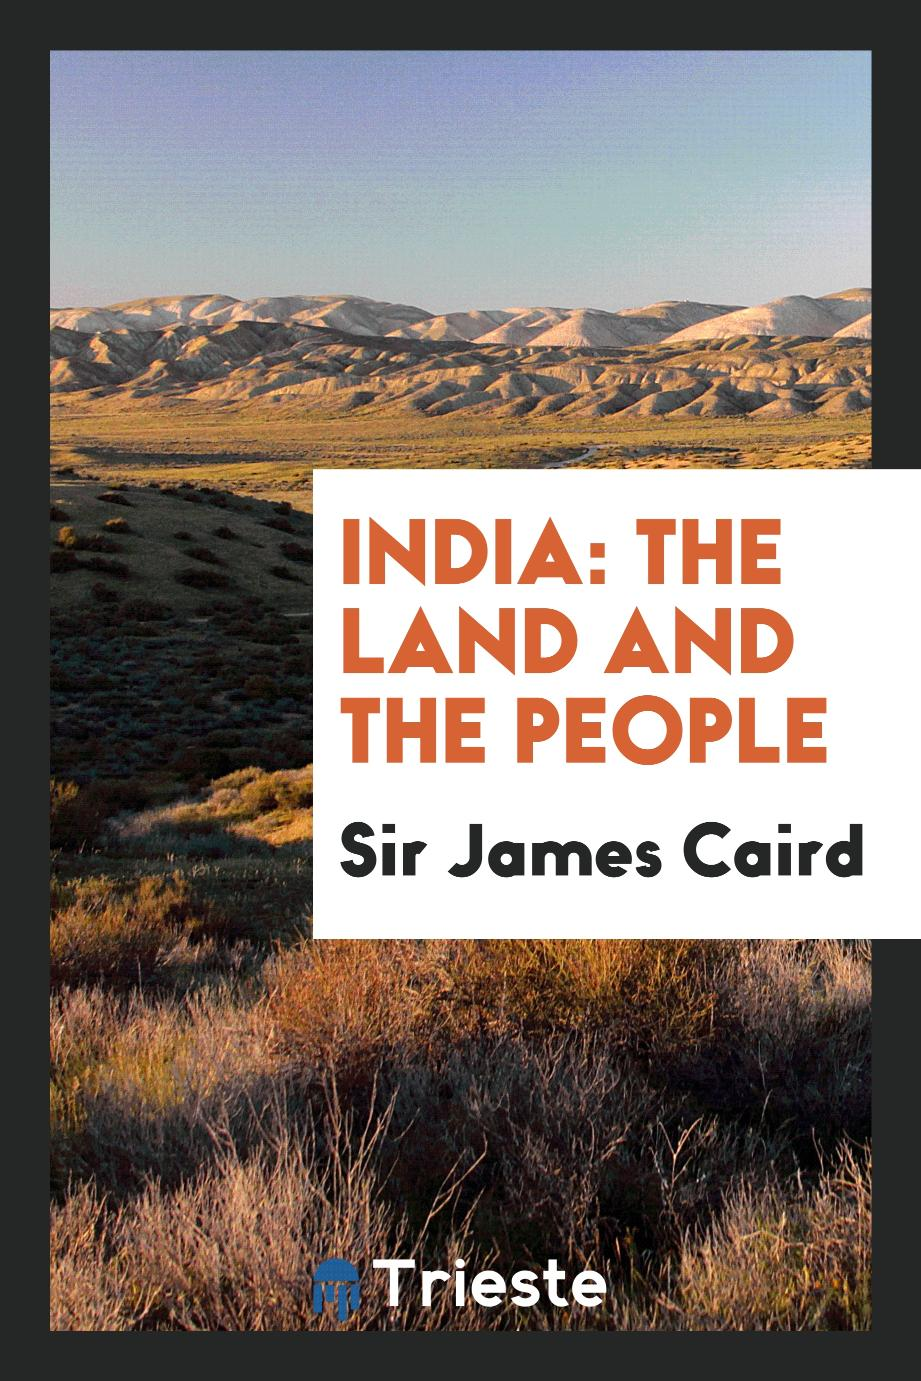 India: The Land and the People